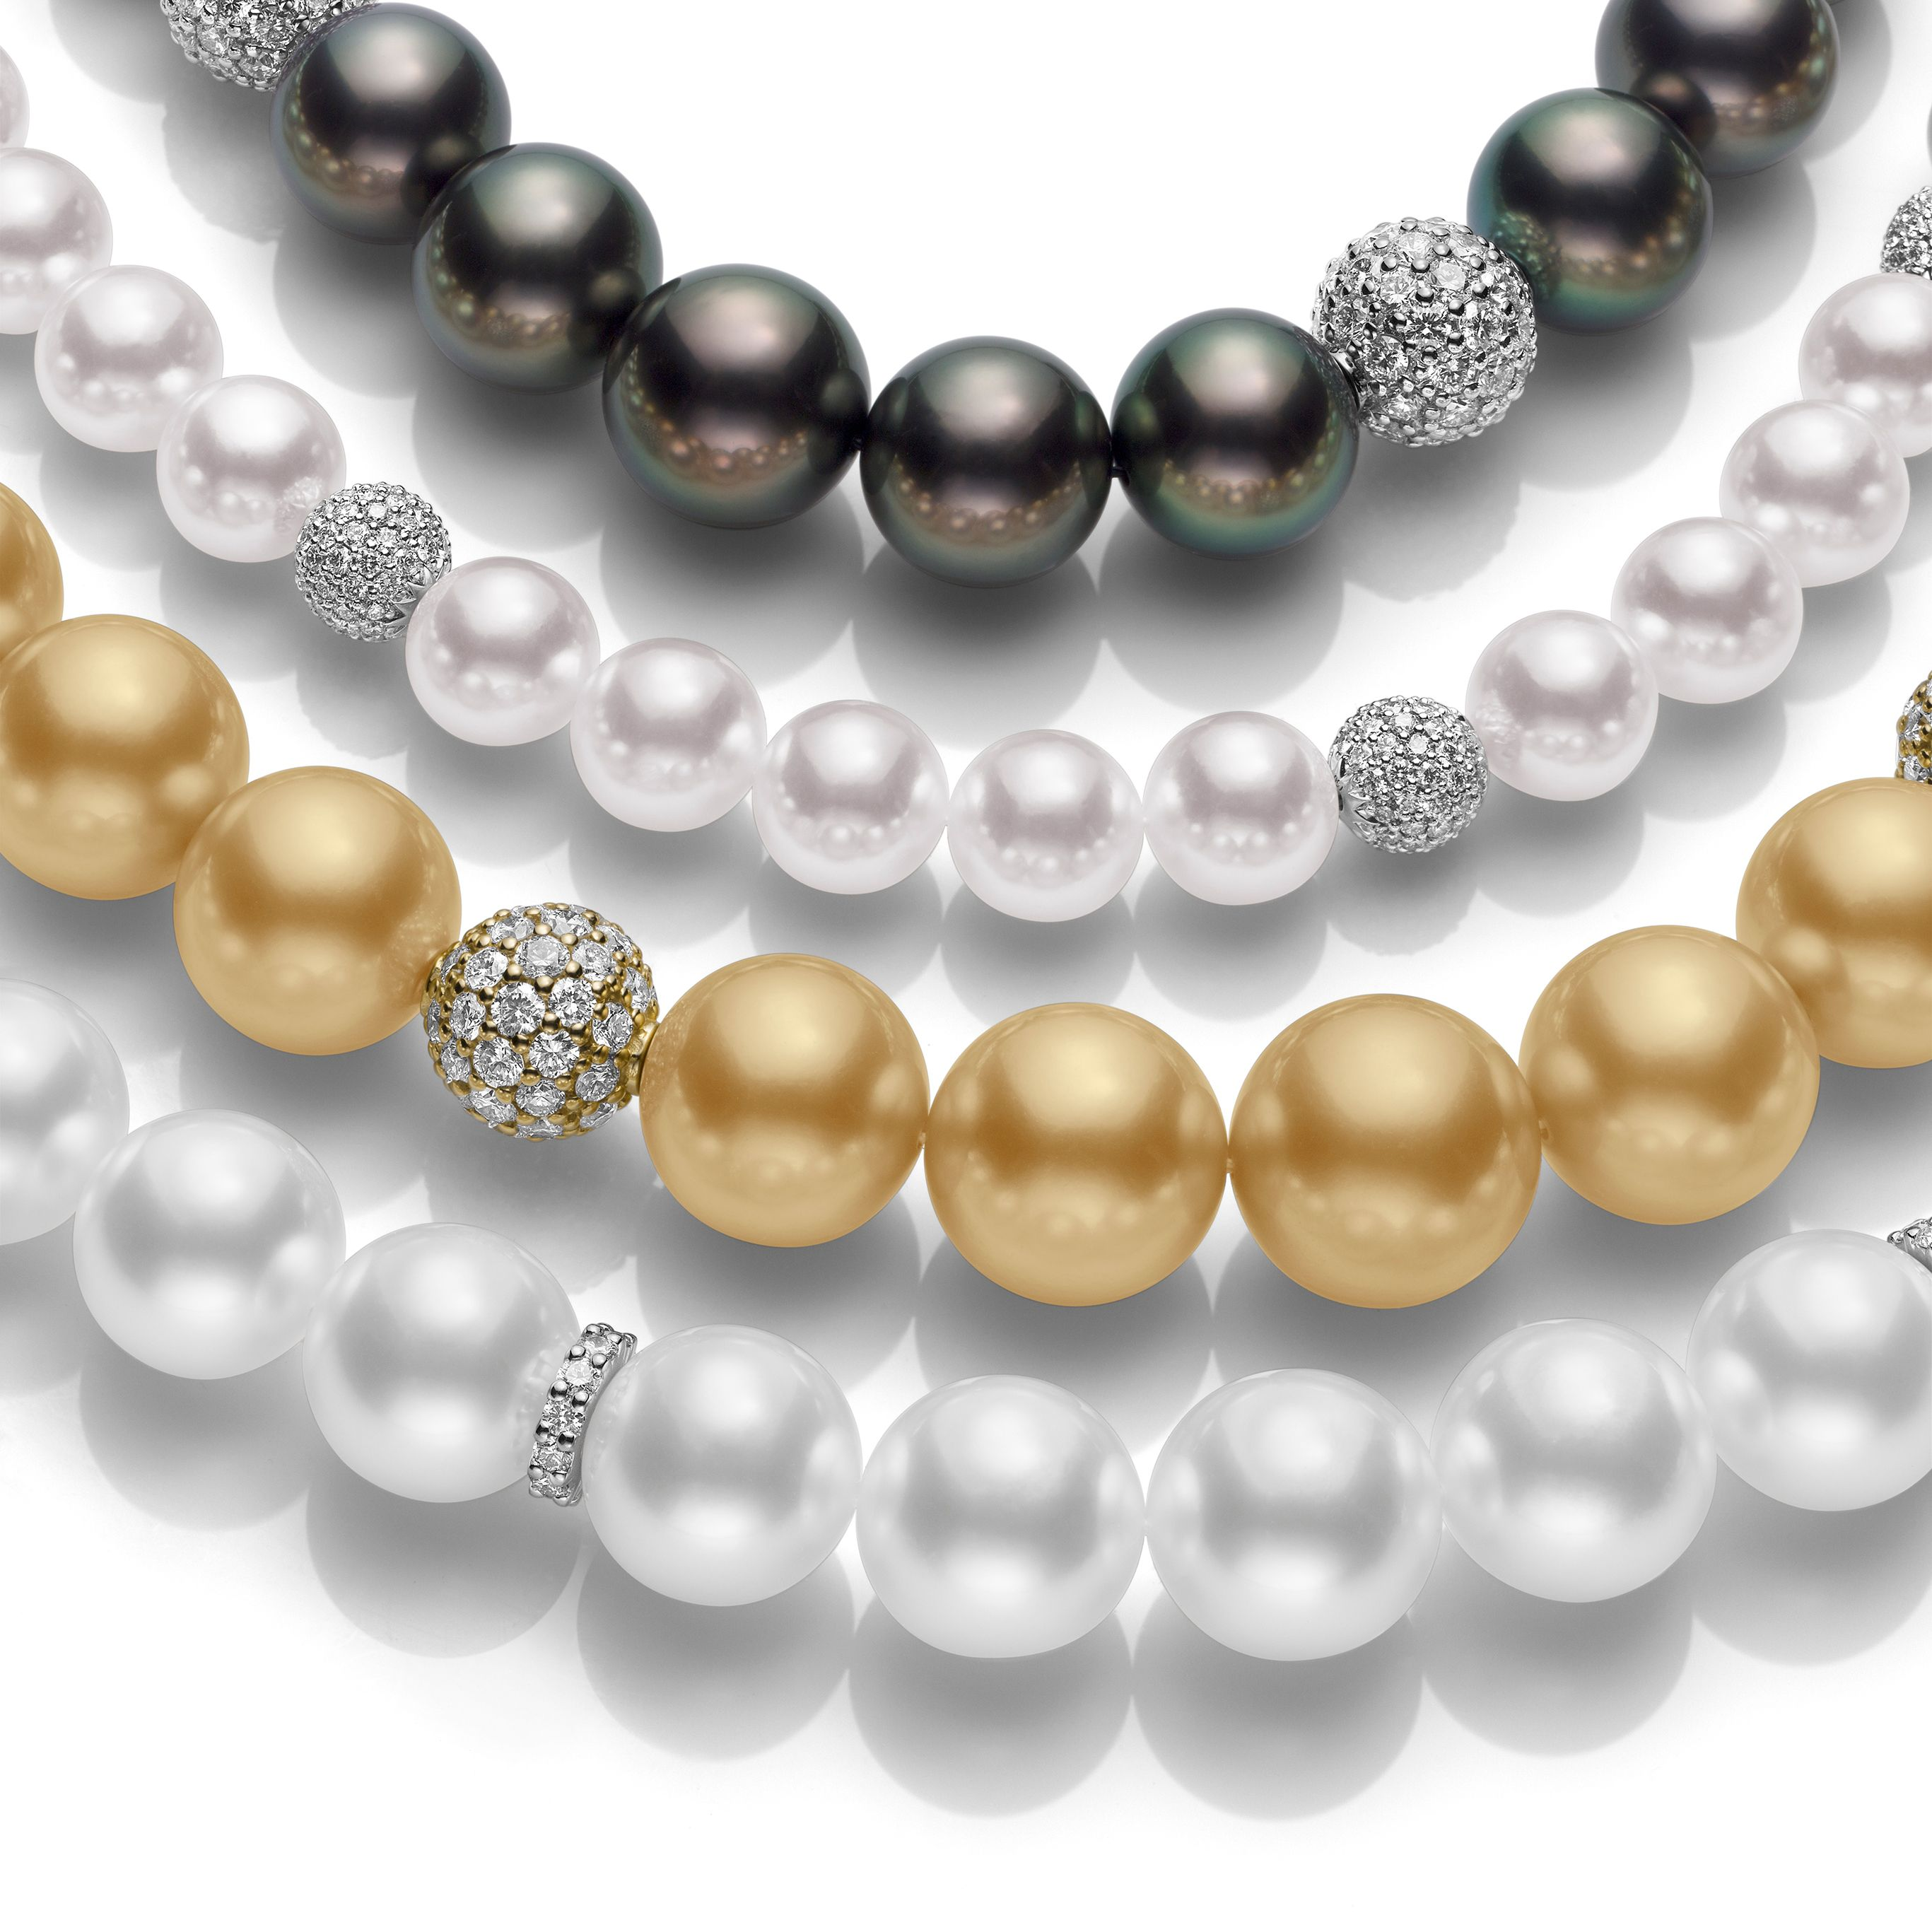 fine and akoya importer manufacturer pearls of jewelry creations gilo types chinese pearl products he